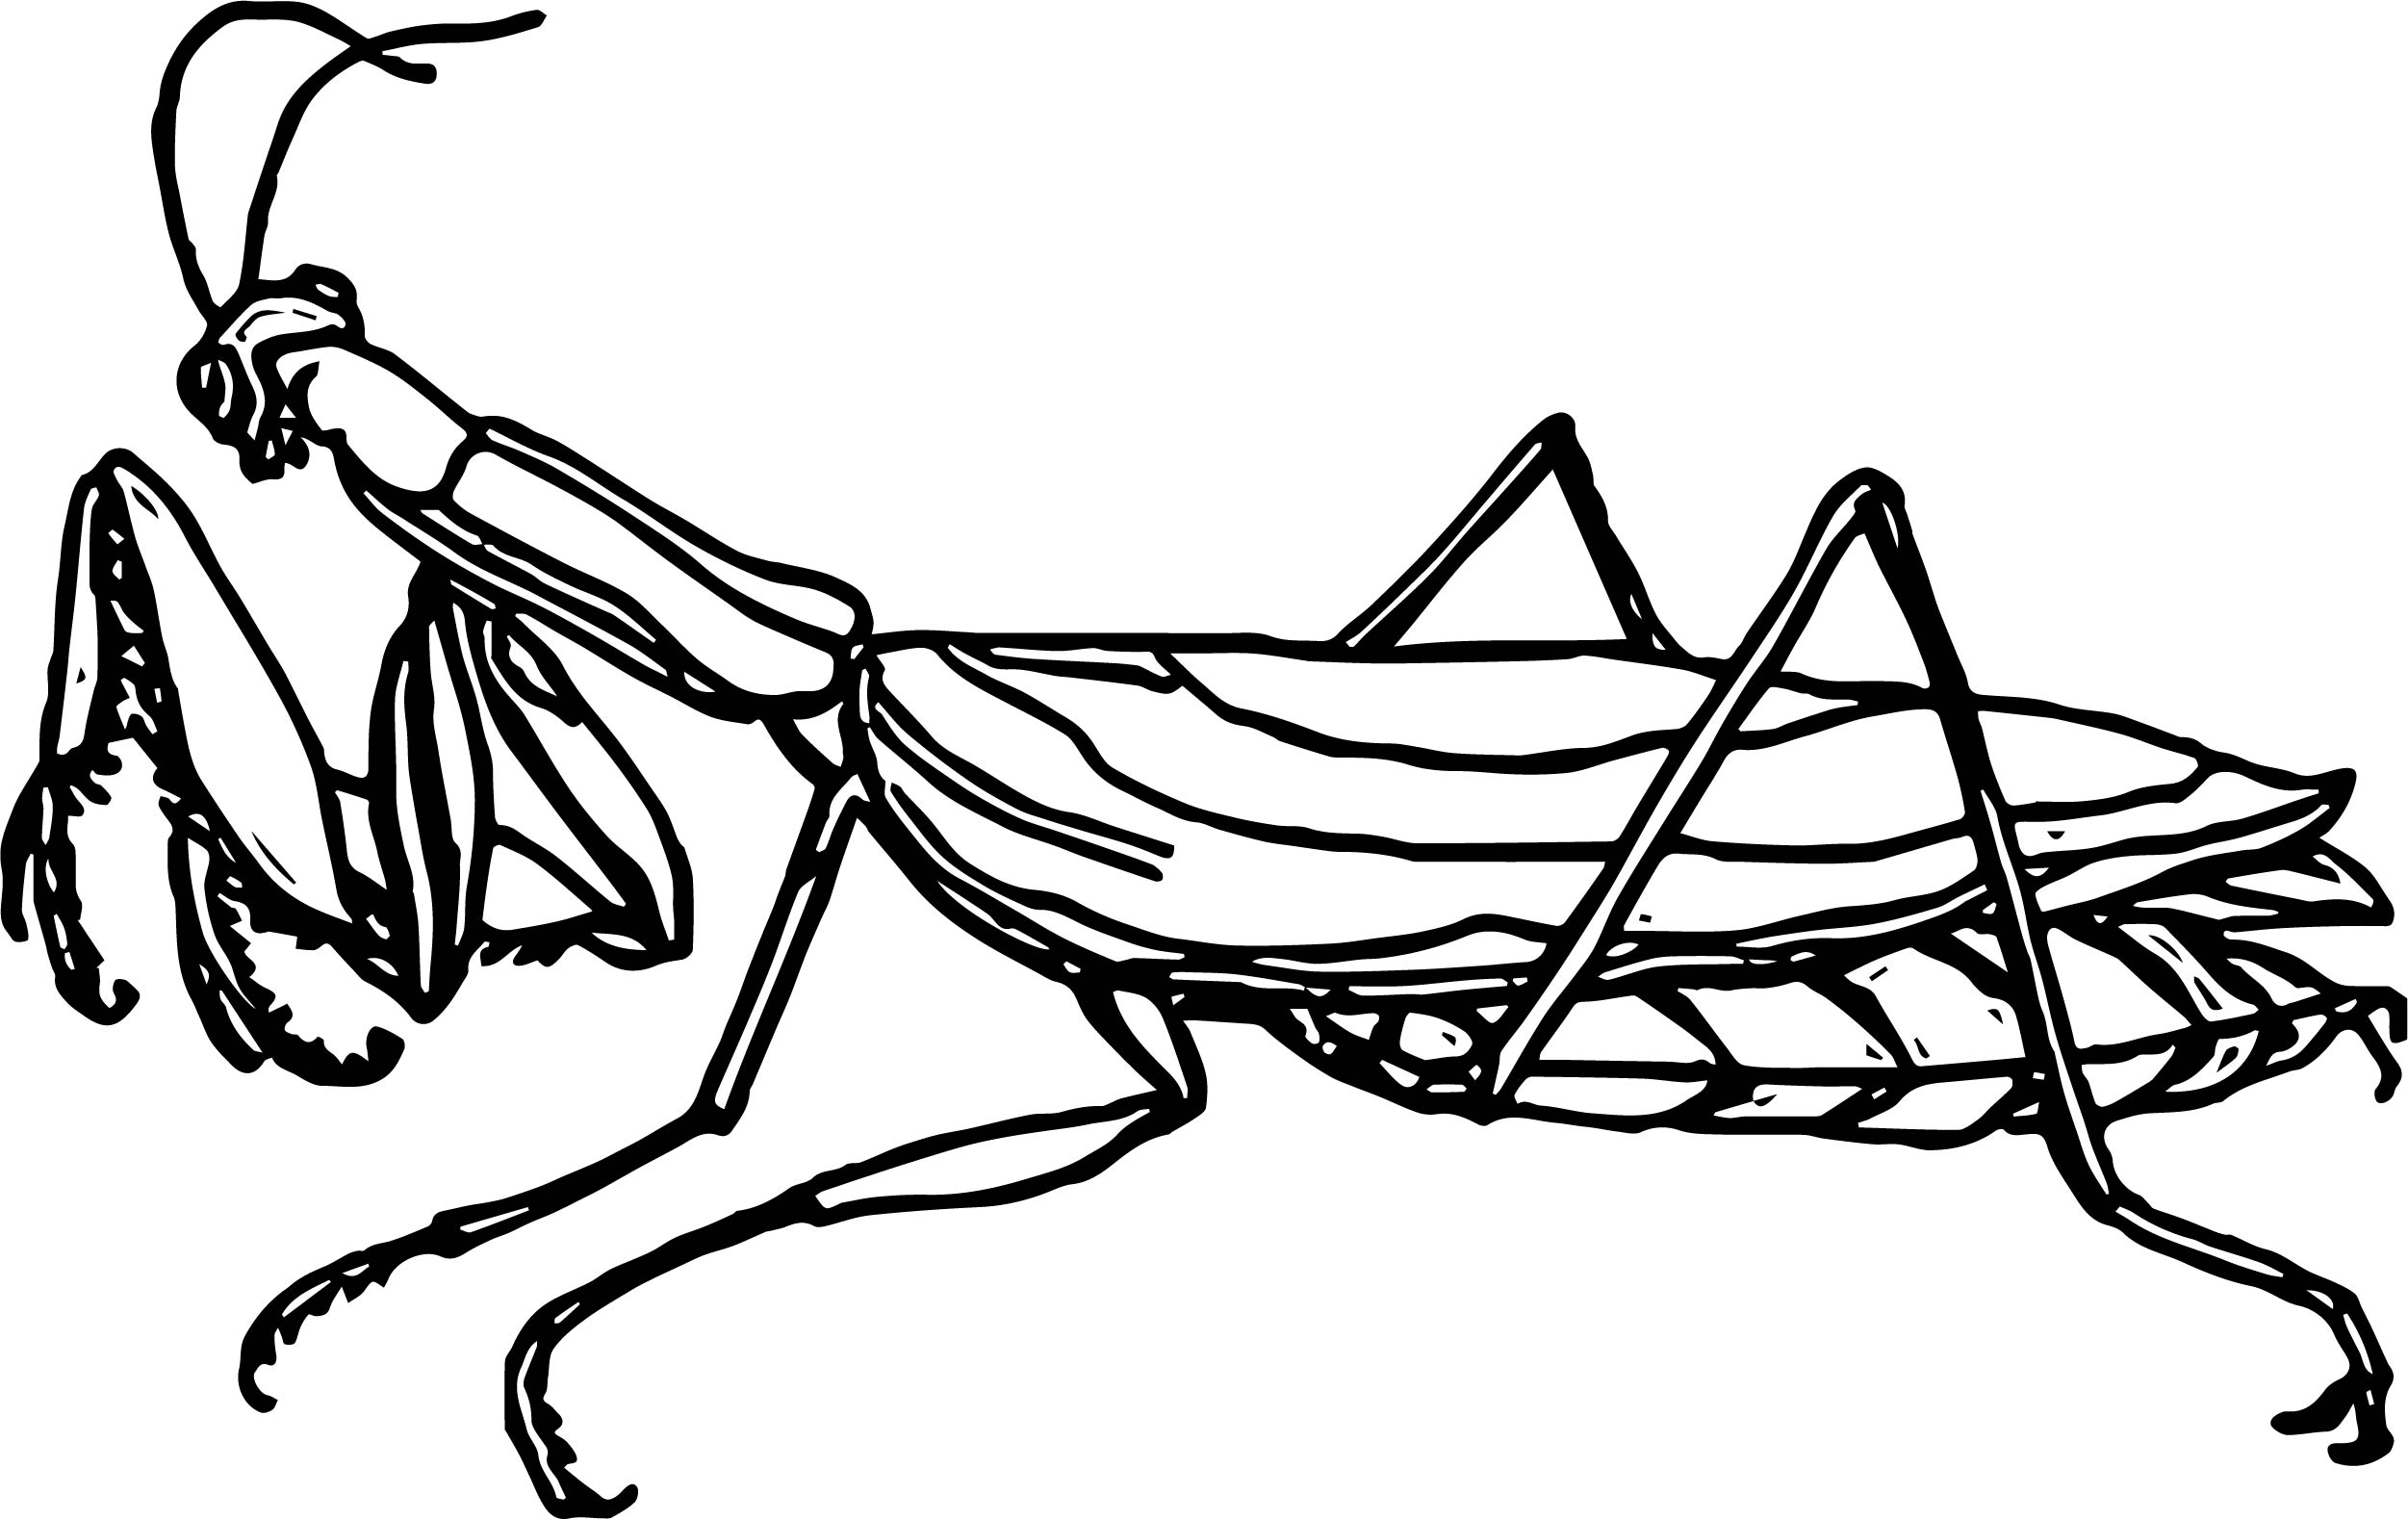 praying mantis insect coloring page